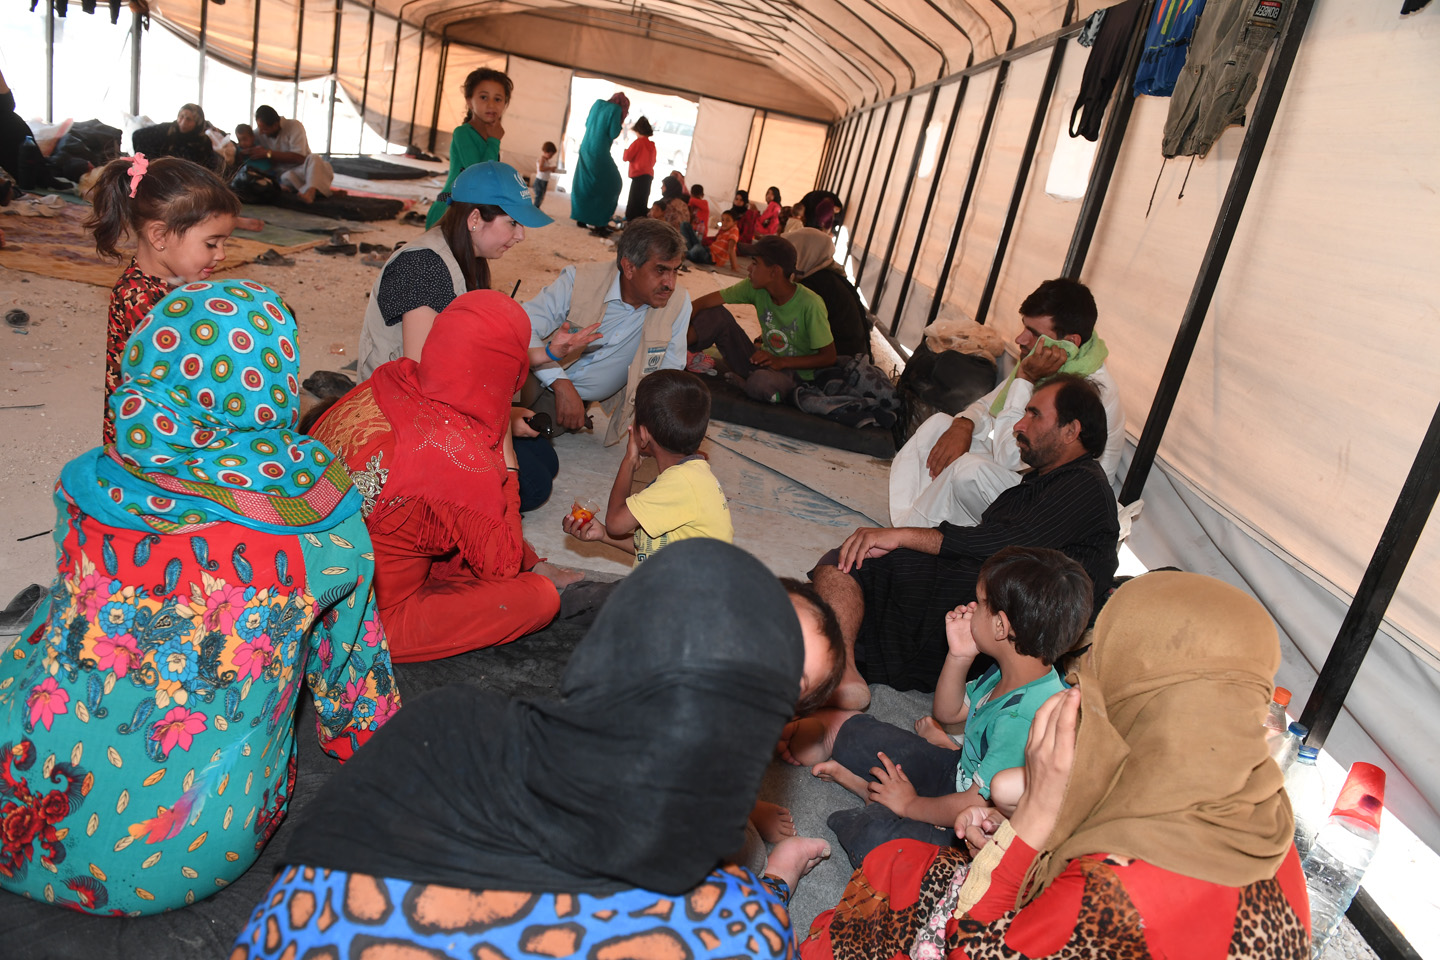 Desperate needs and pleas for safe passage out of Raqqa